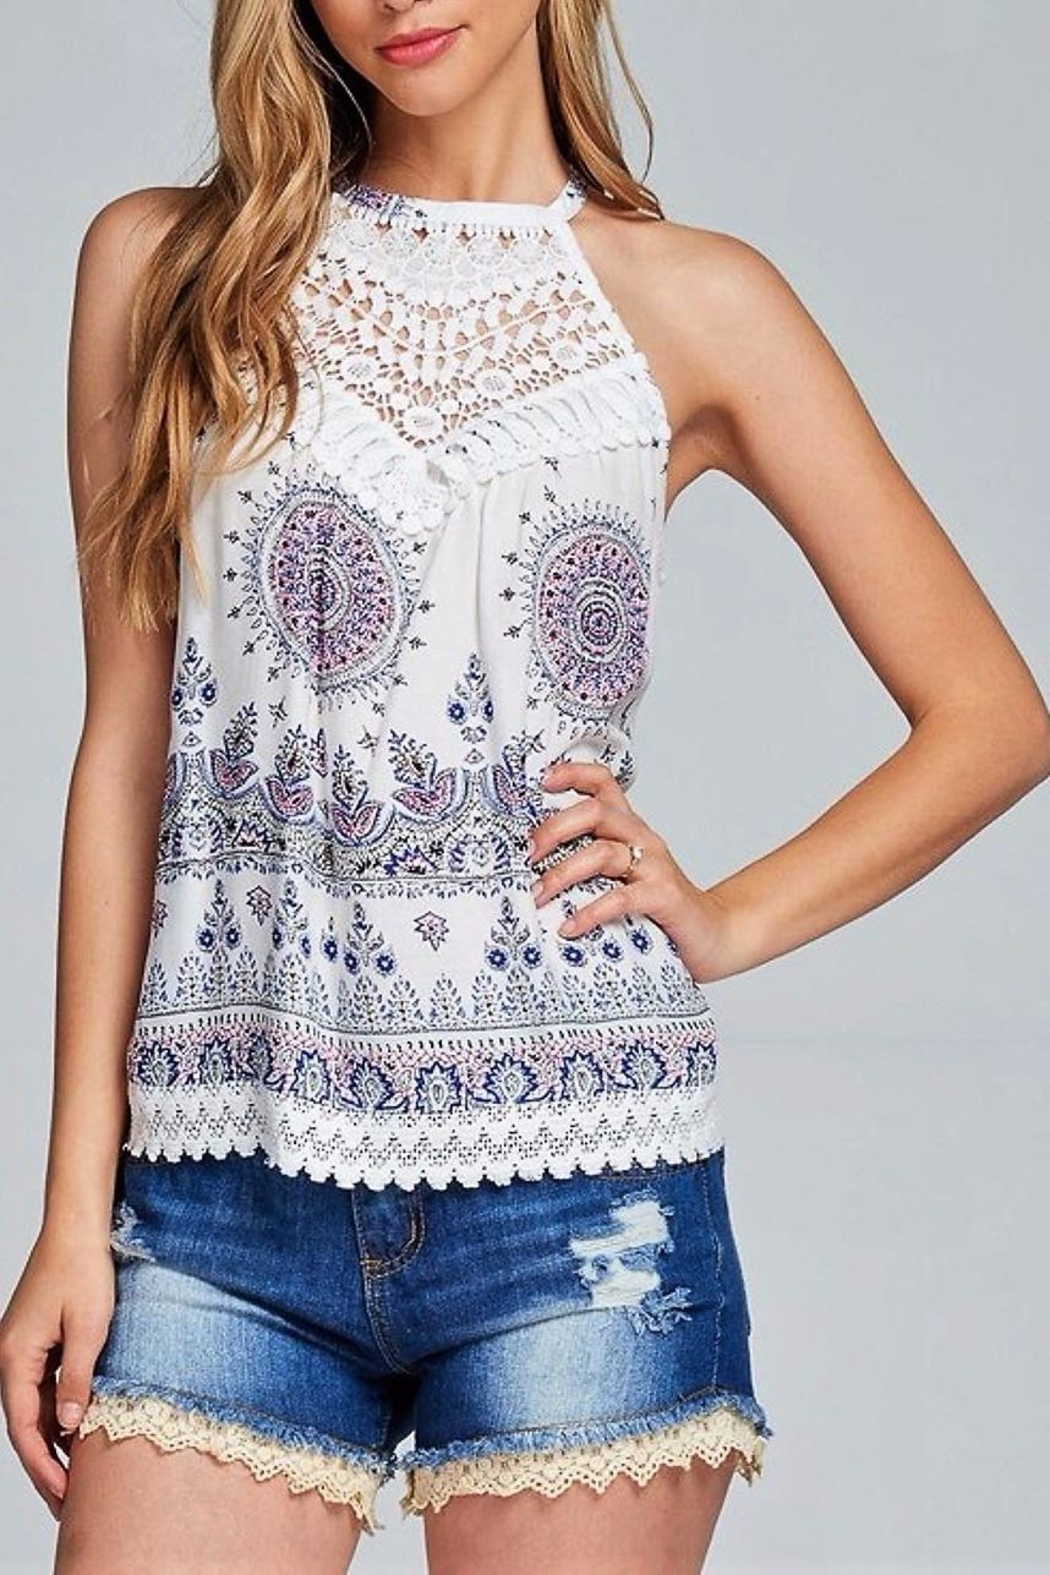 People Outfitter Mila Tank Top - Main Image